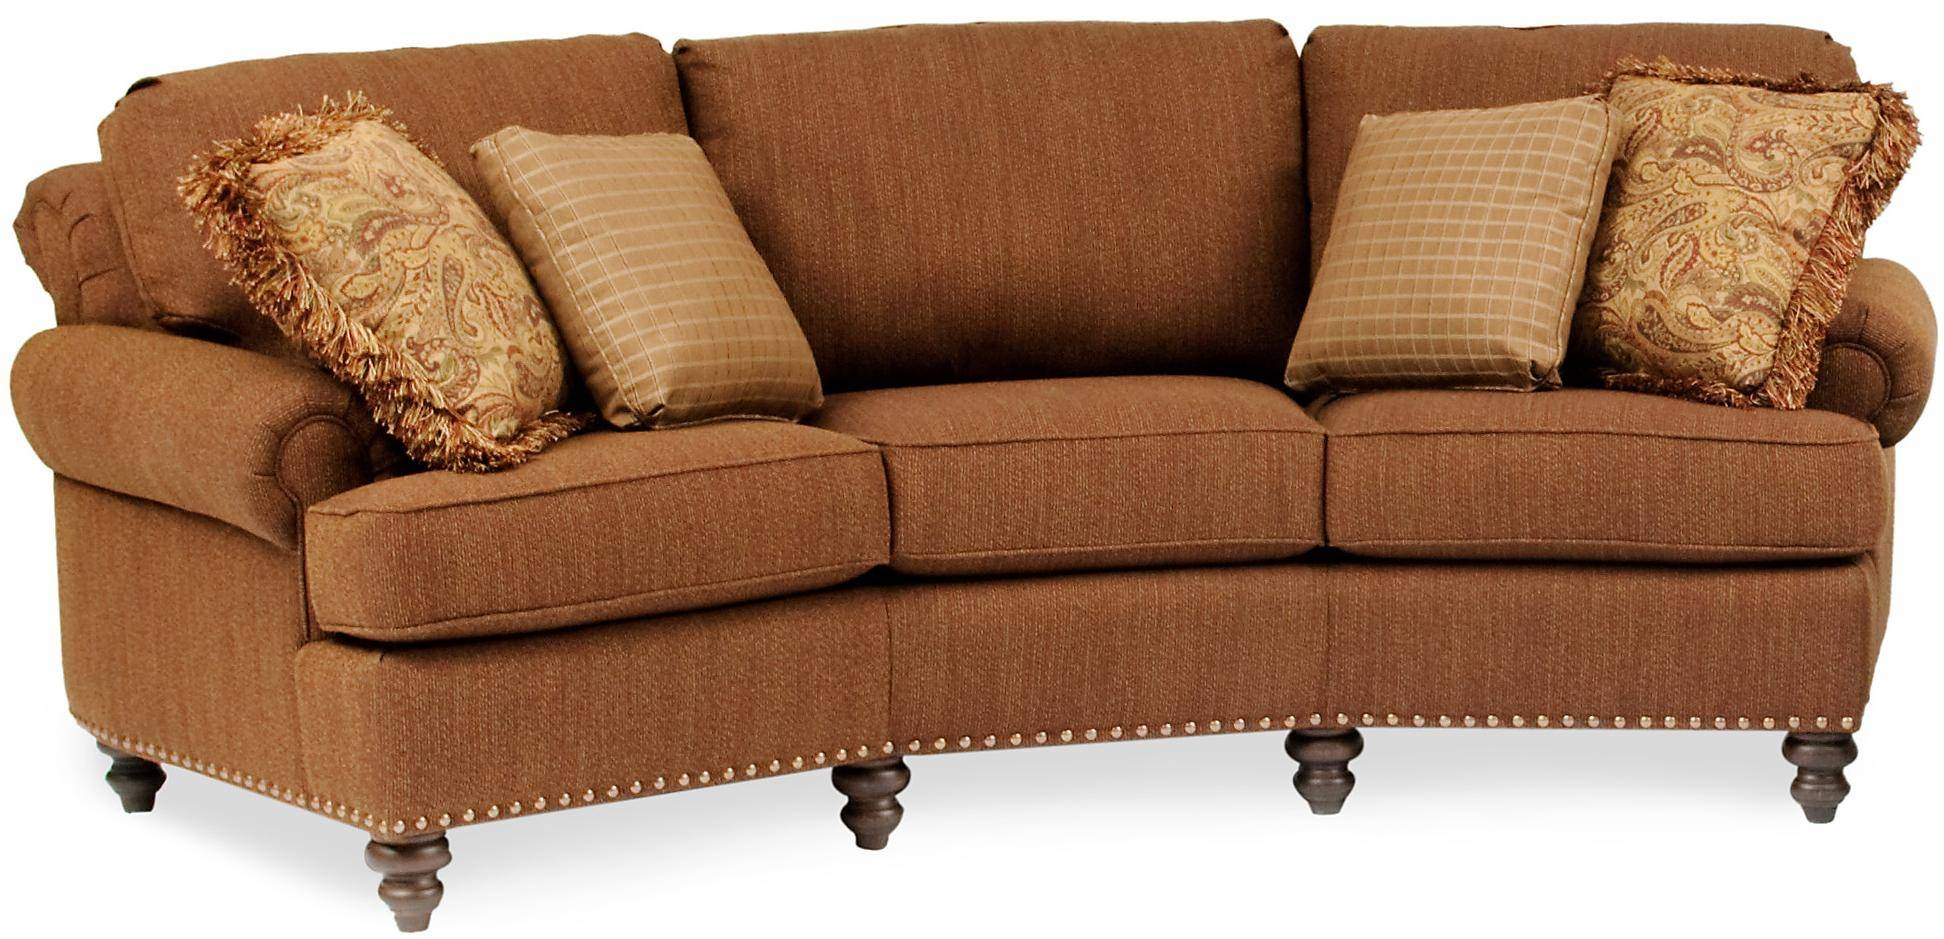 Living Room Curved Couches Sectionals Trends With Conversation Intended For Conversation Sofa Sectional (View 4 of 30)